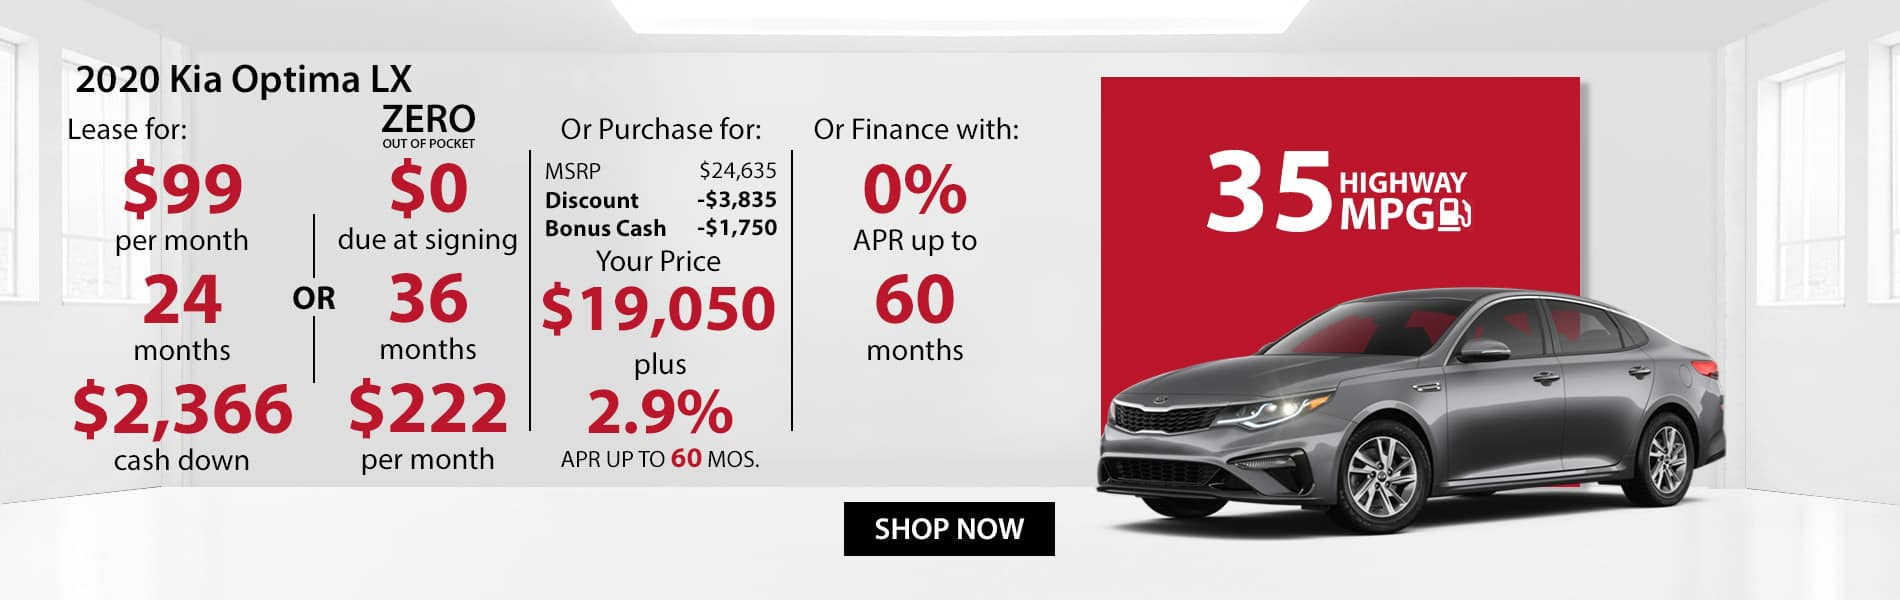 Special offer on 2019 Kia Optima LX Lease for $99 with $2366 down or Purchase for $19,050 with 2.9% APR or get 0% APR for 60 months.